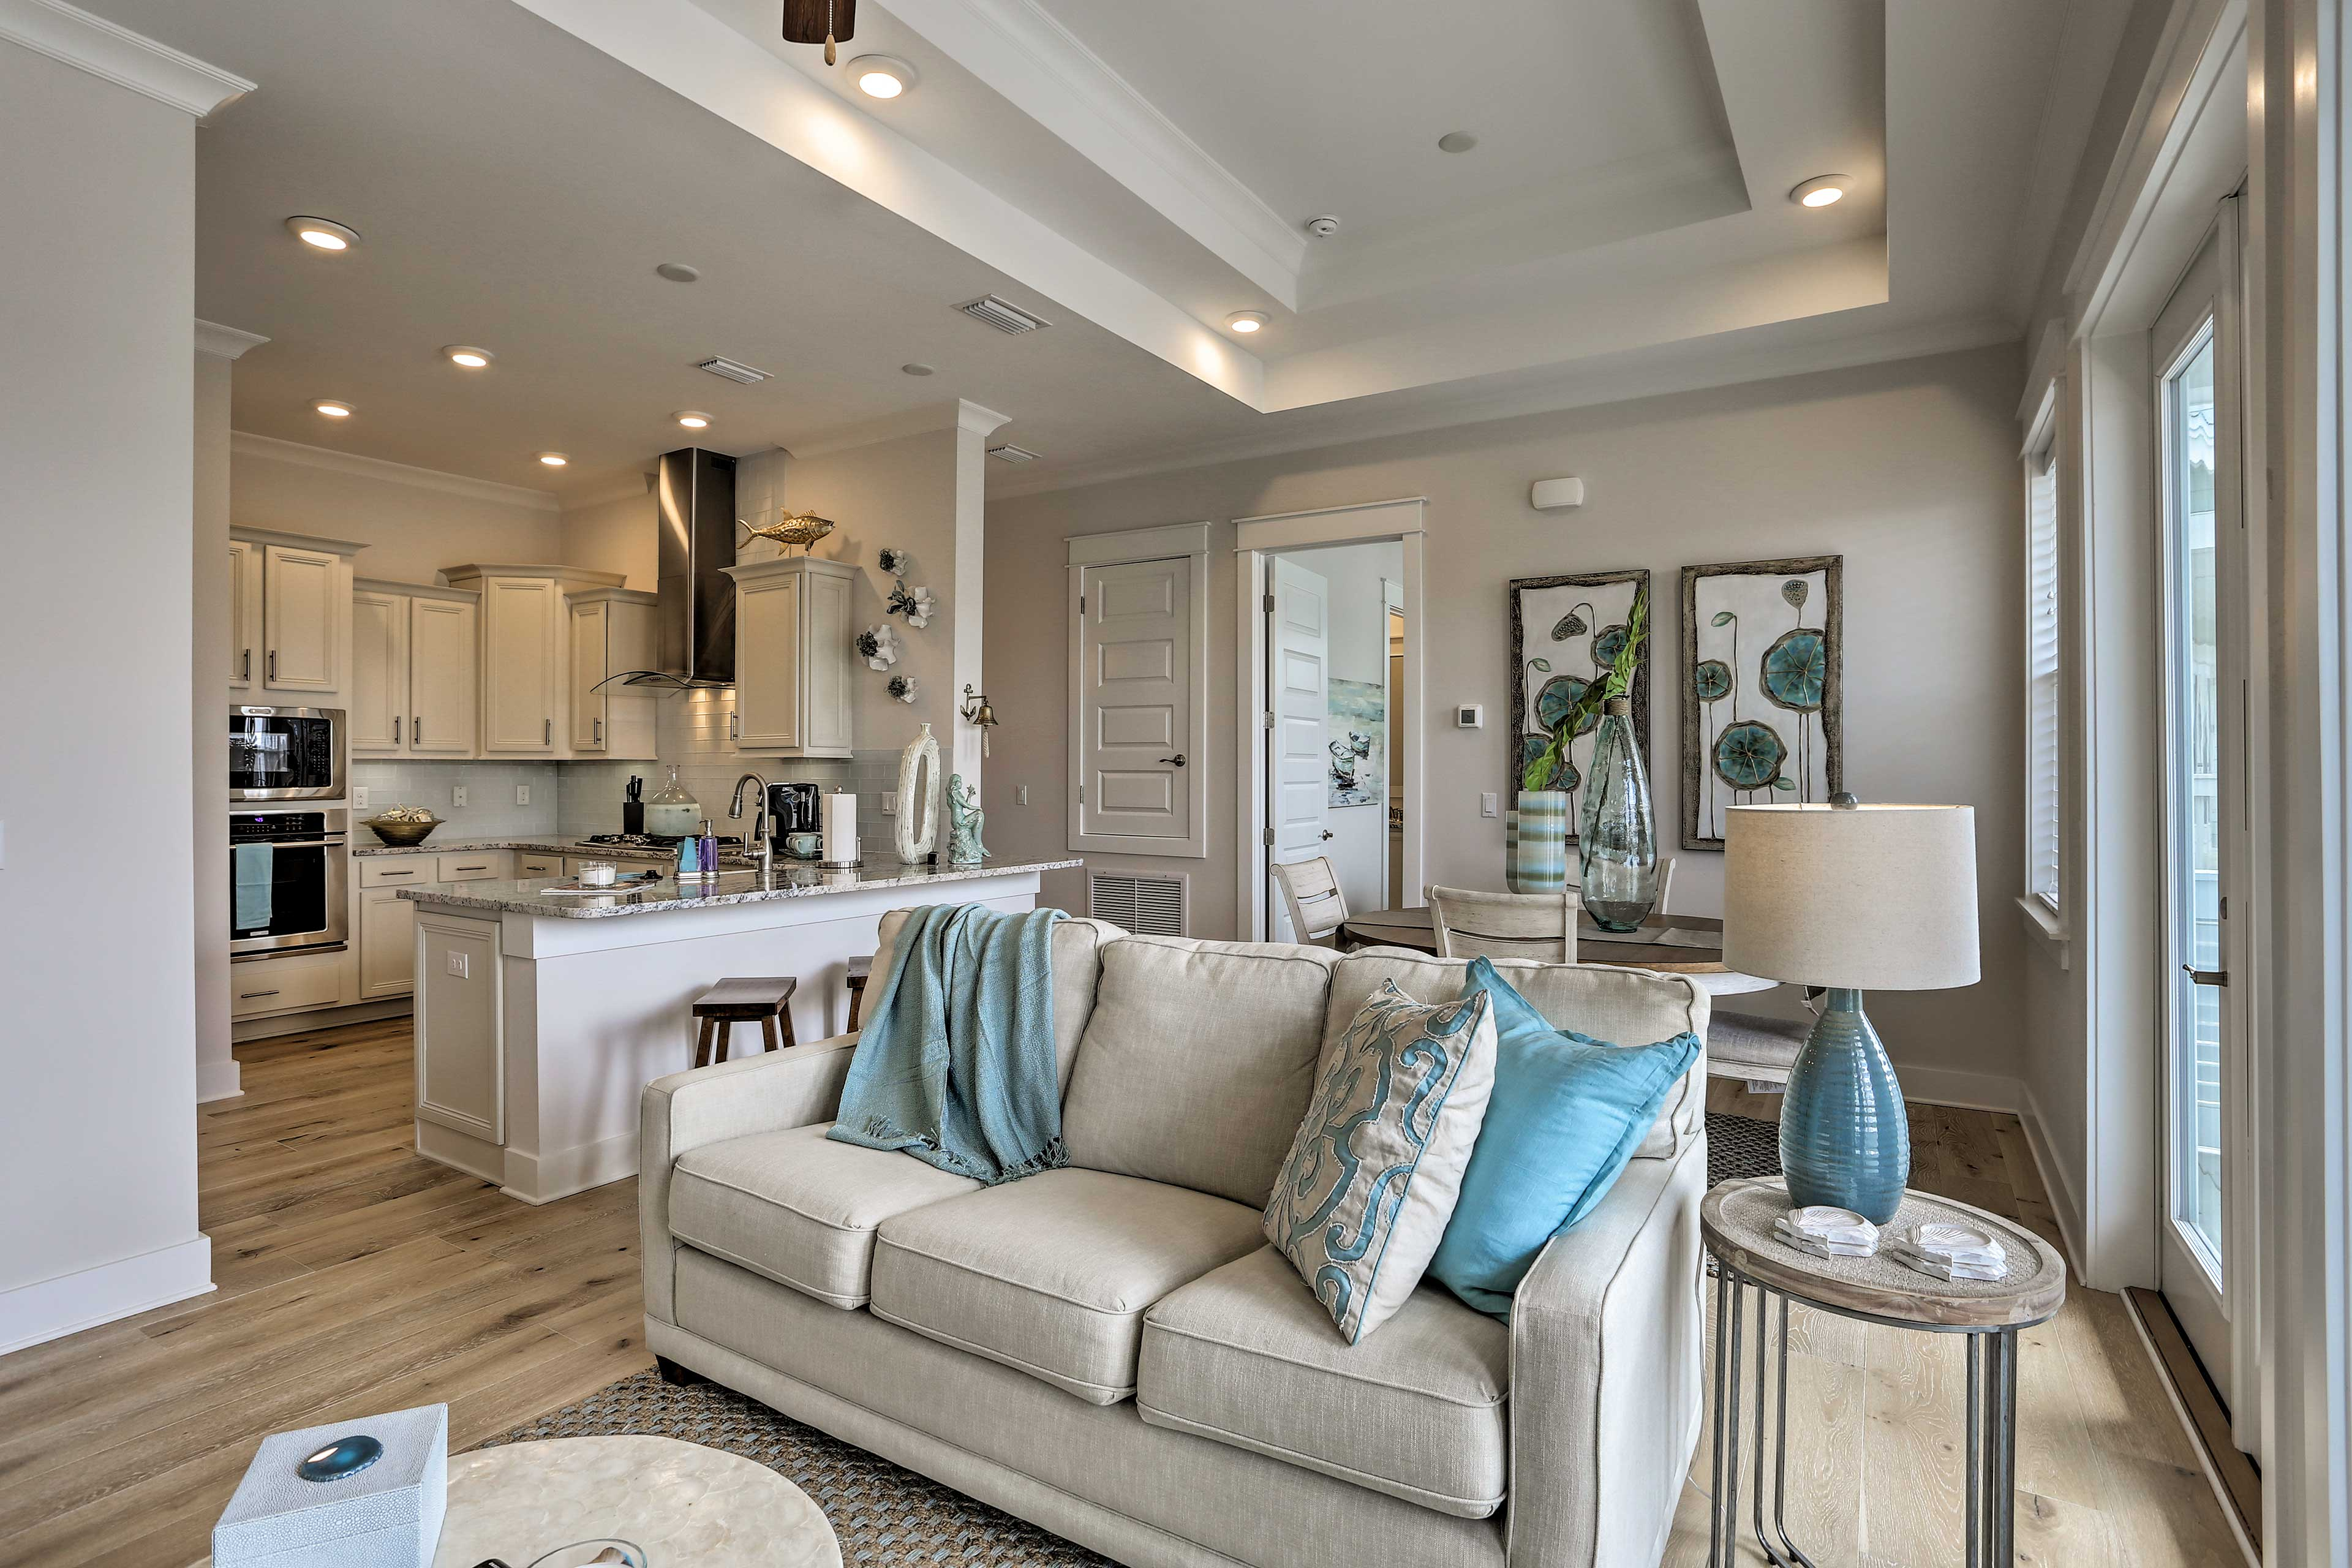 The open layout is perfect for spending quality time with loved ones.